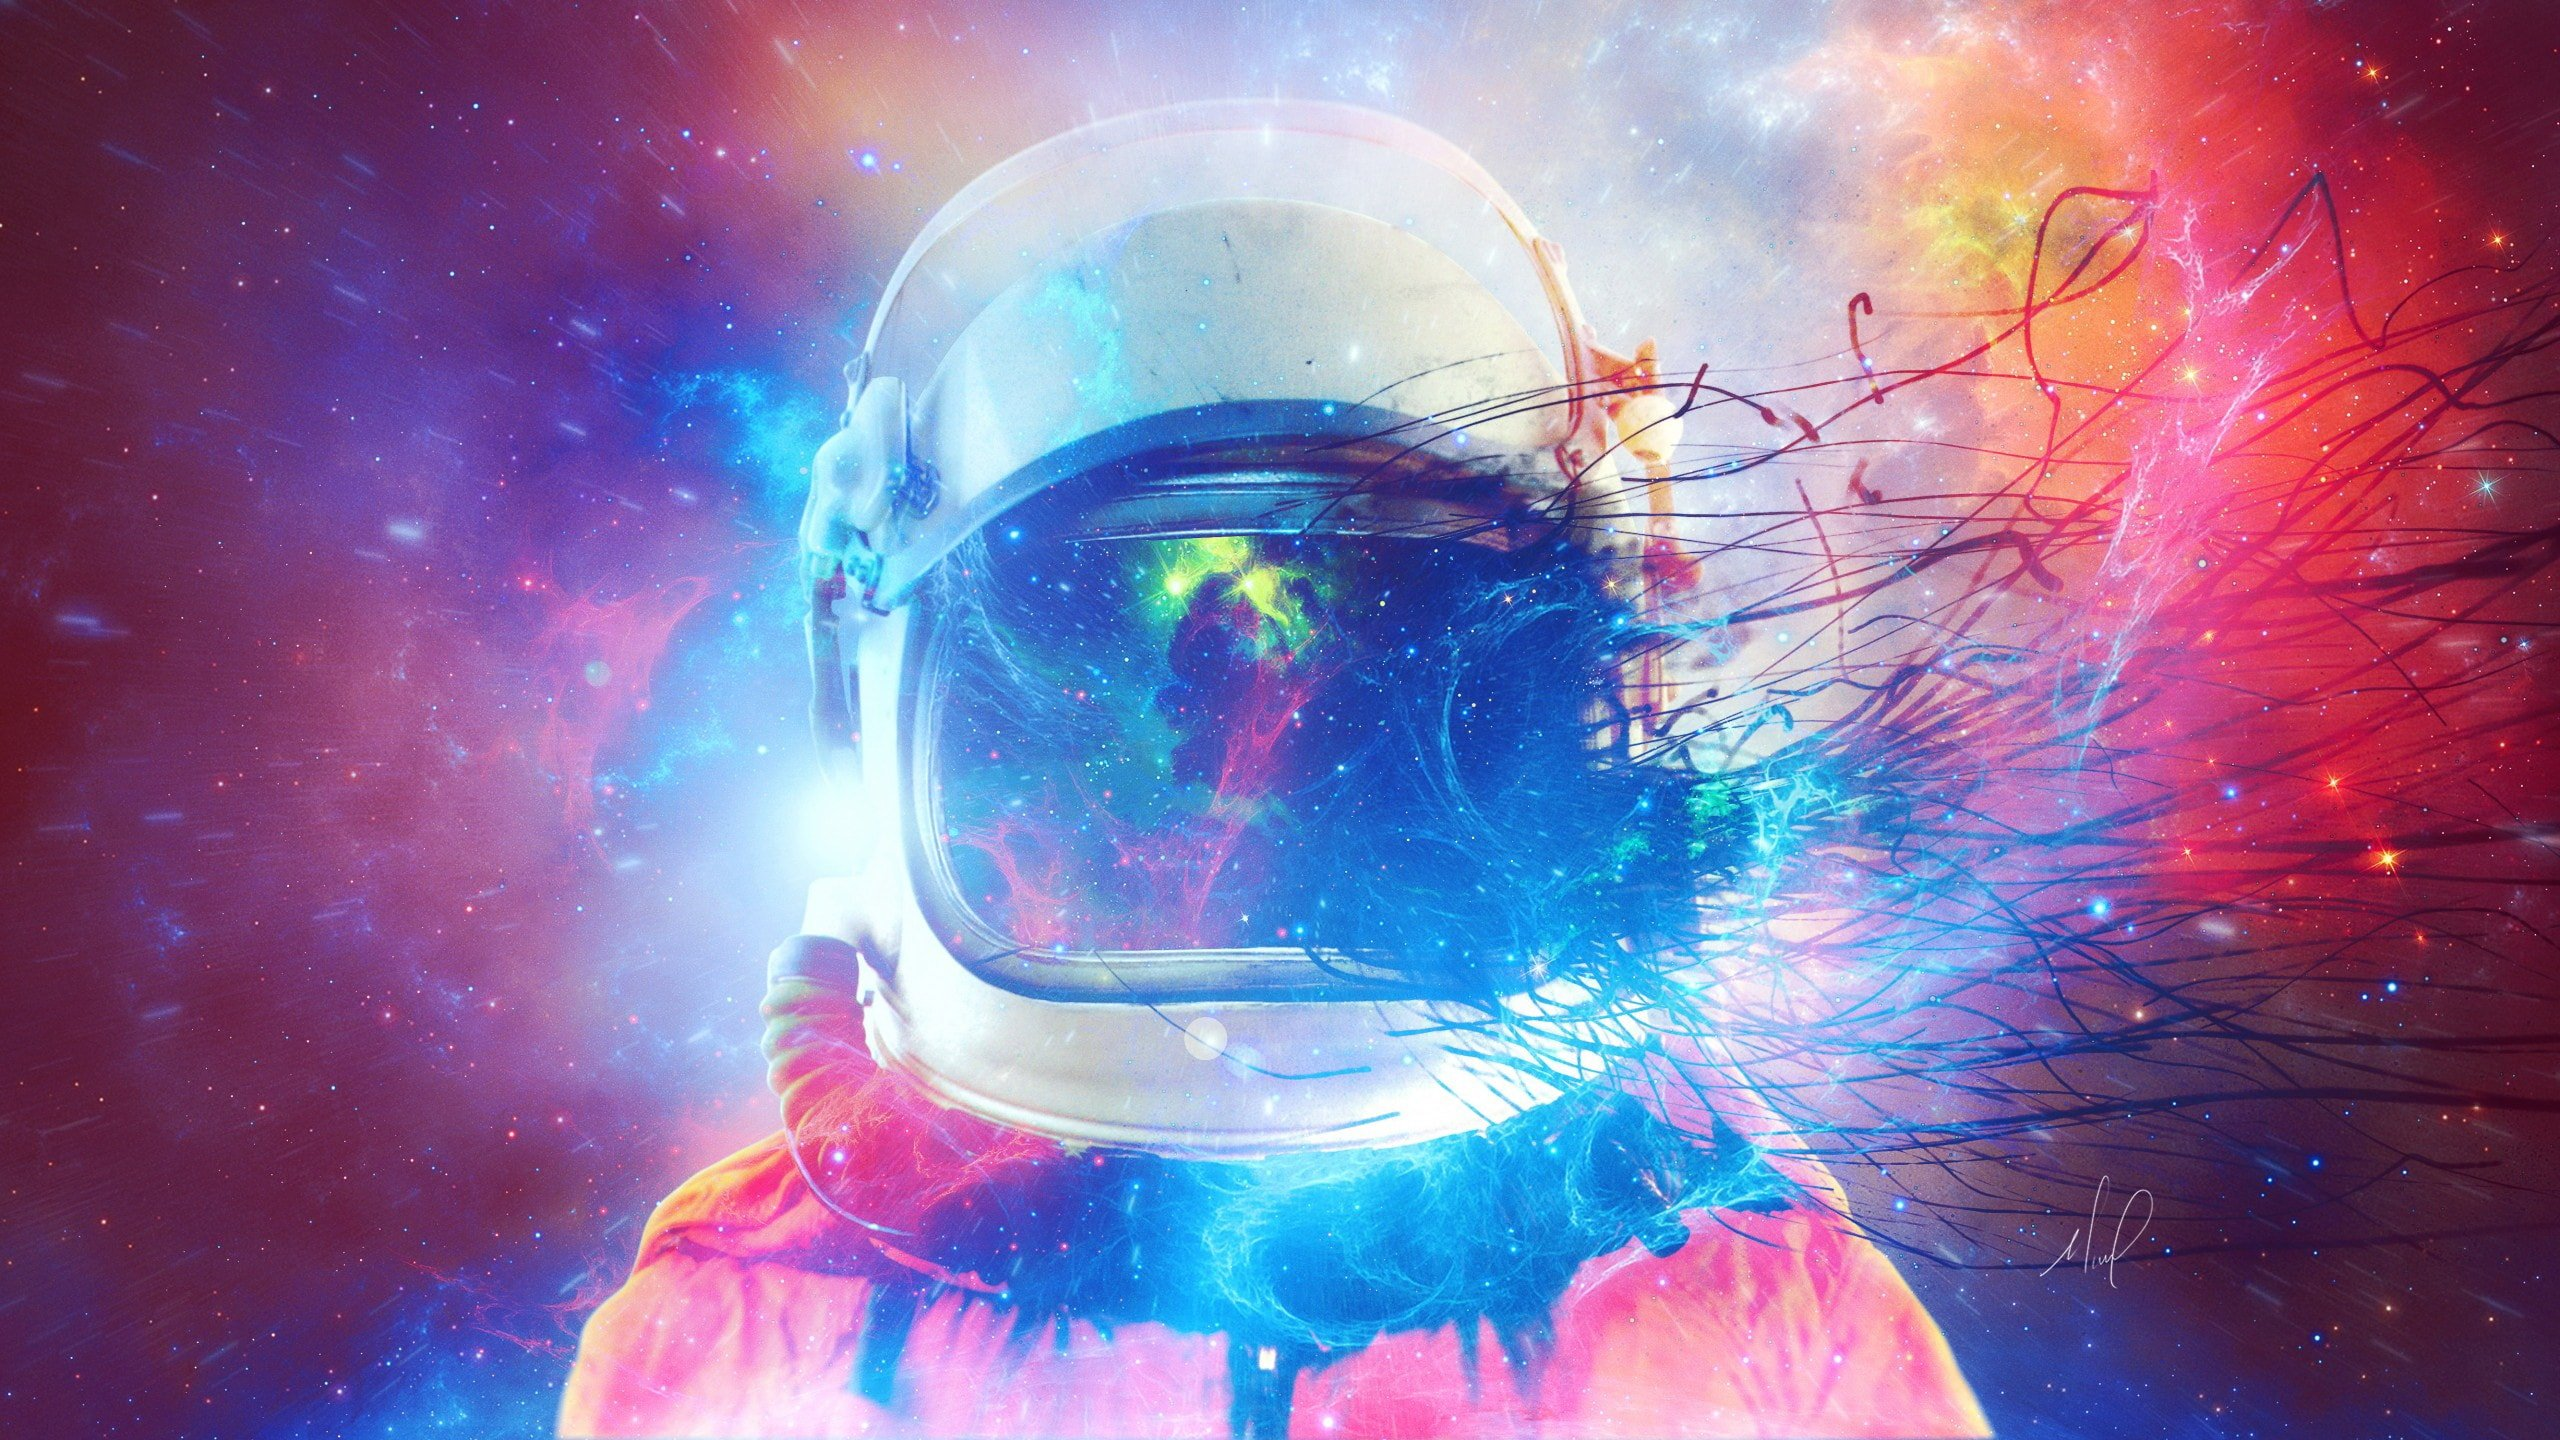 Abstract Astronaut Wallpapers Top Free Abstract Astronaut Backgrounds Wallpaperaccess